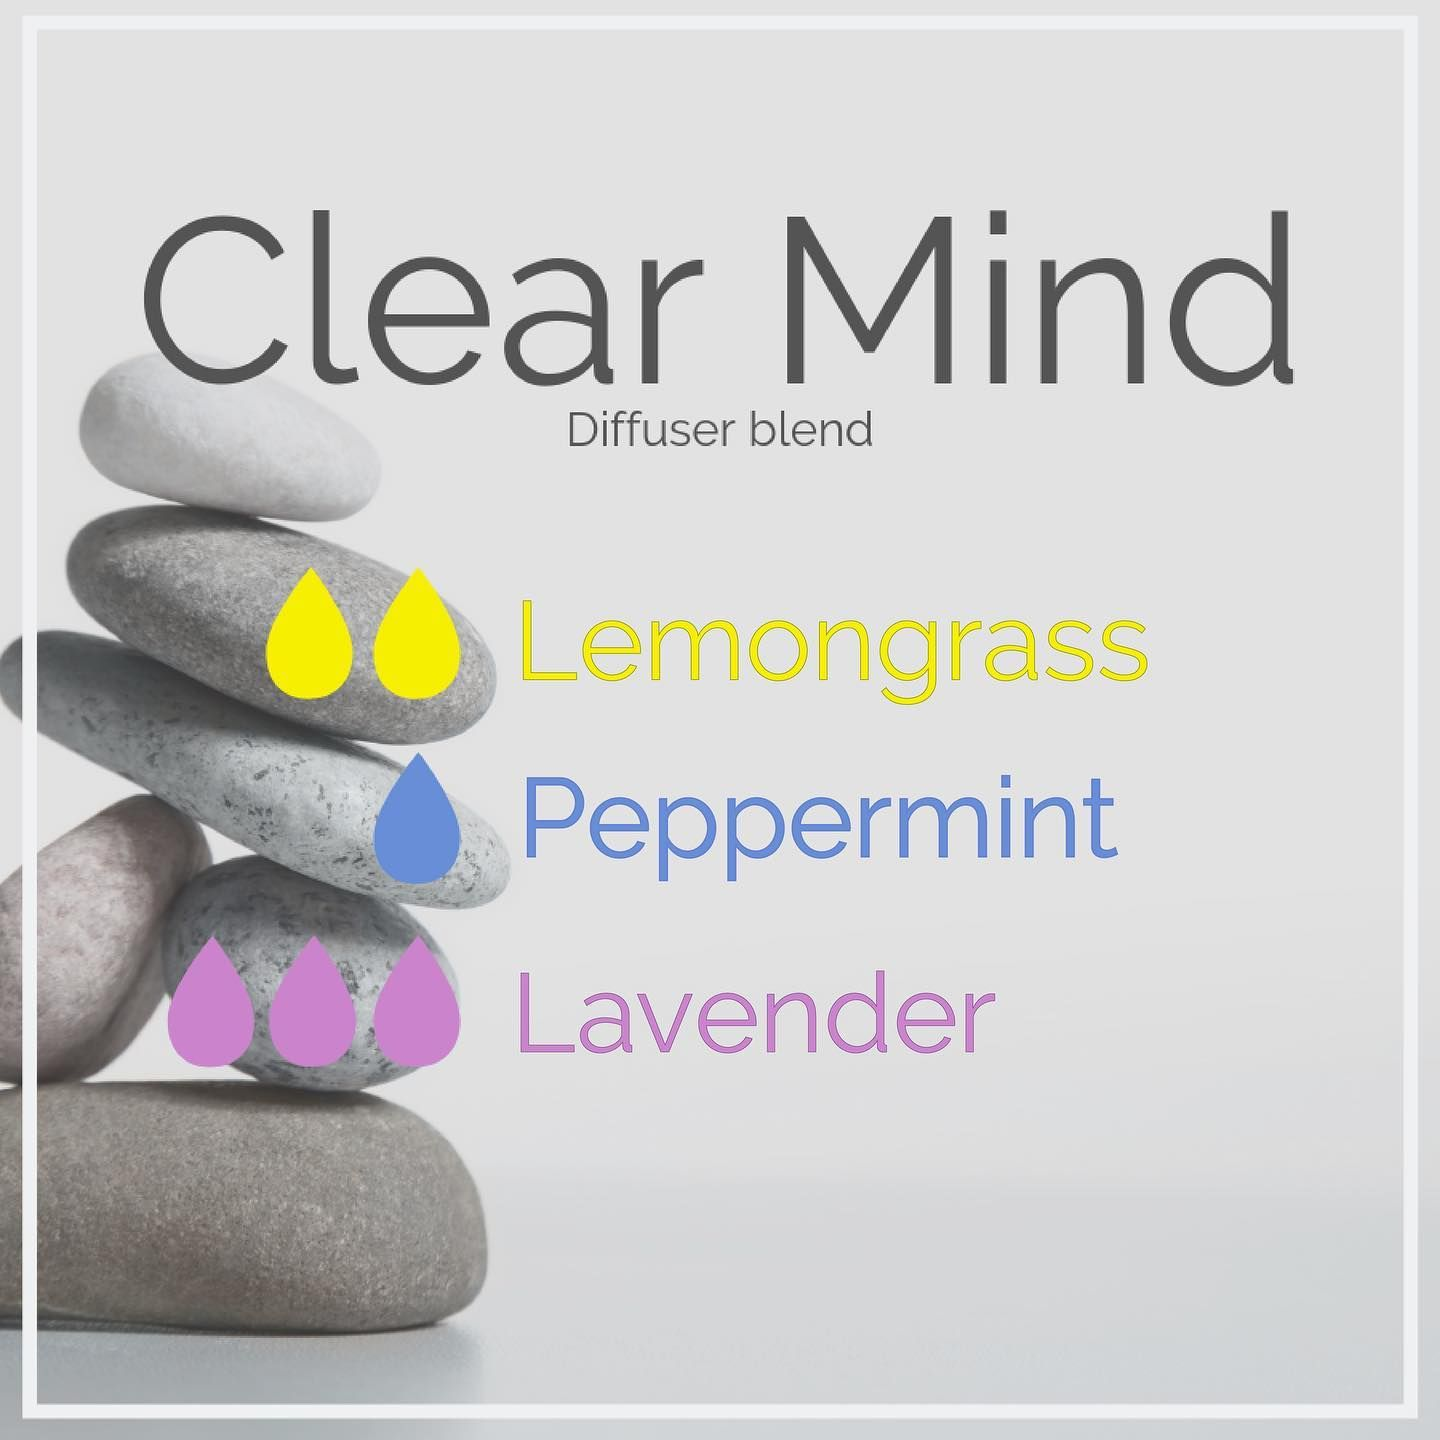 I will be diffusing this all day to help me start the week off clear & focused  😃  #clearmind #recharge #diffuse #essentialoils #clarity #focus